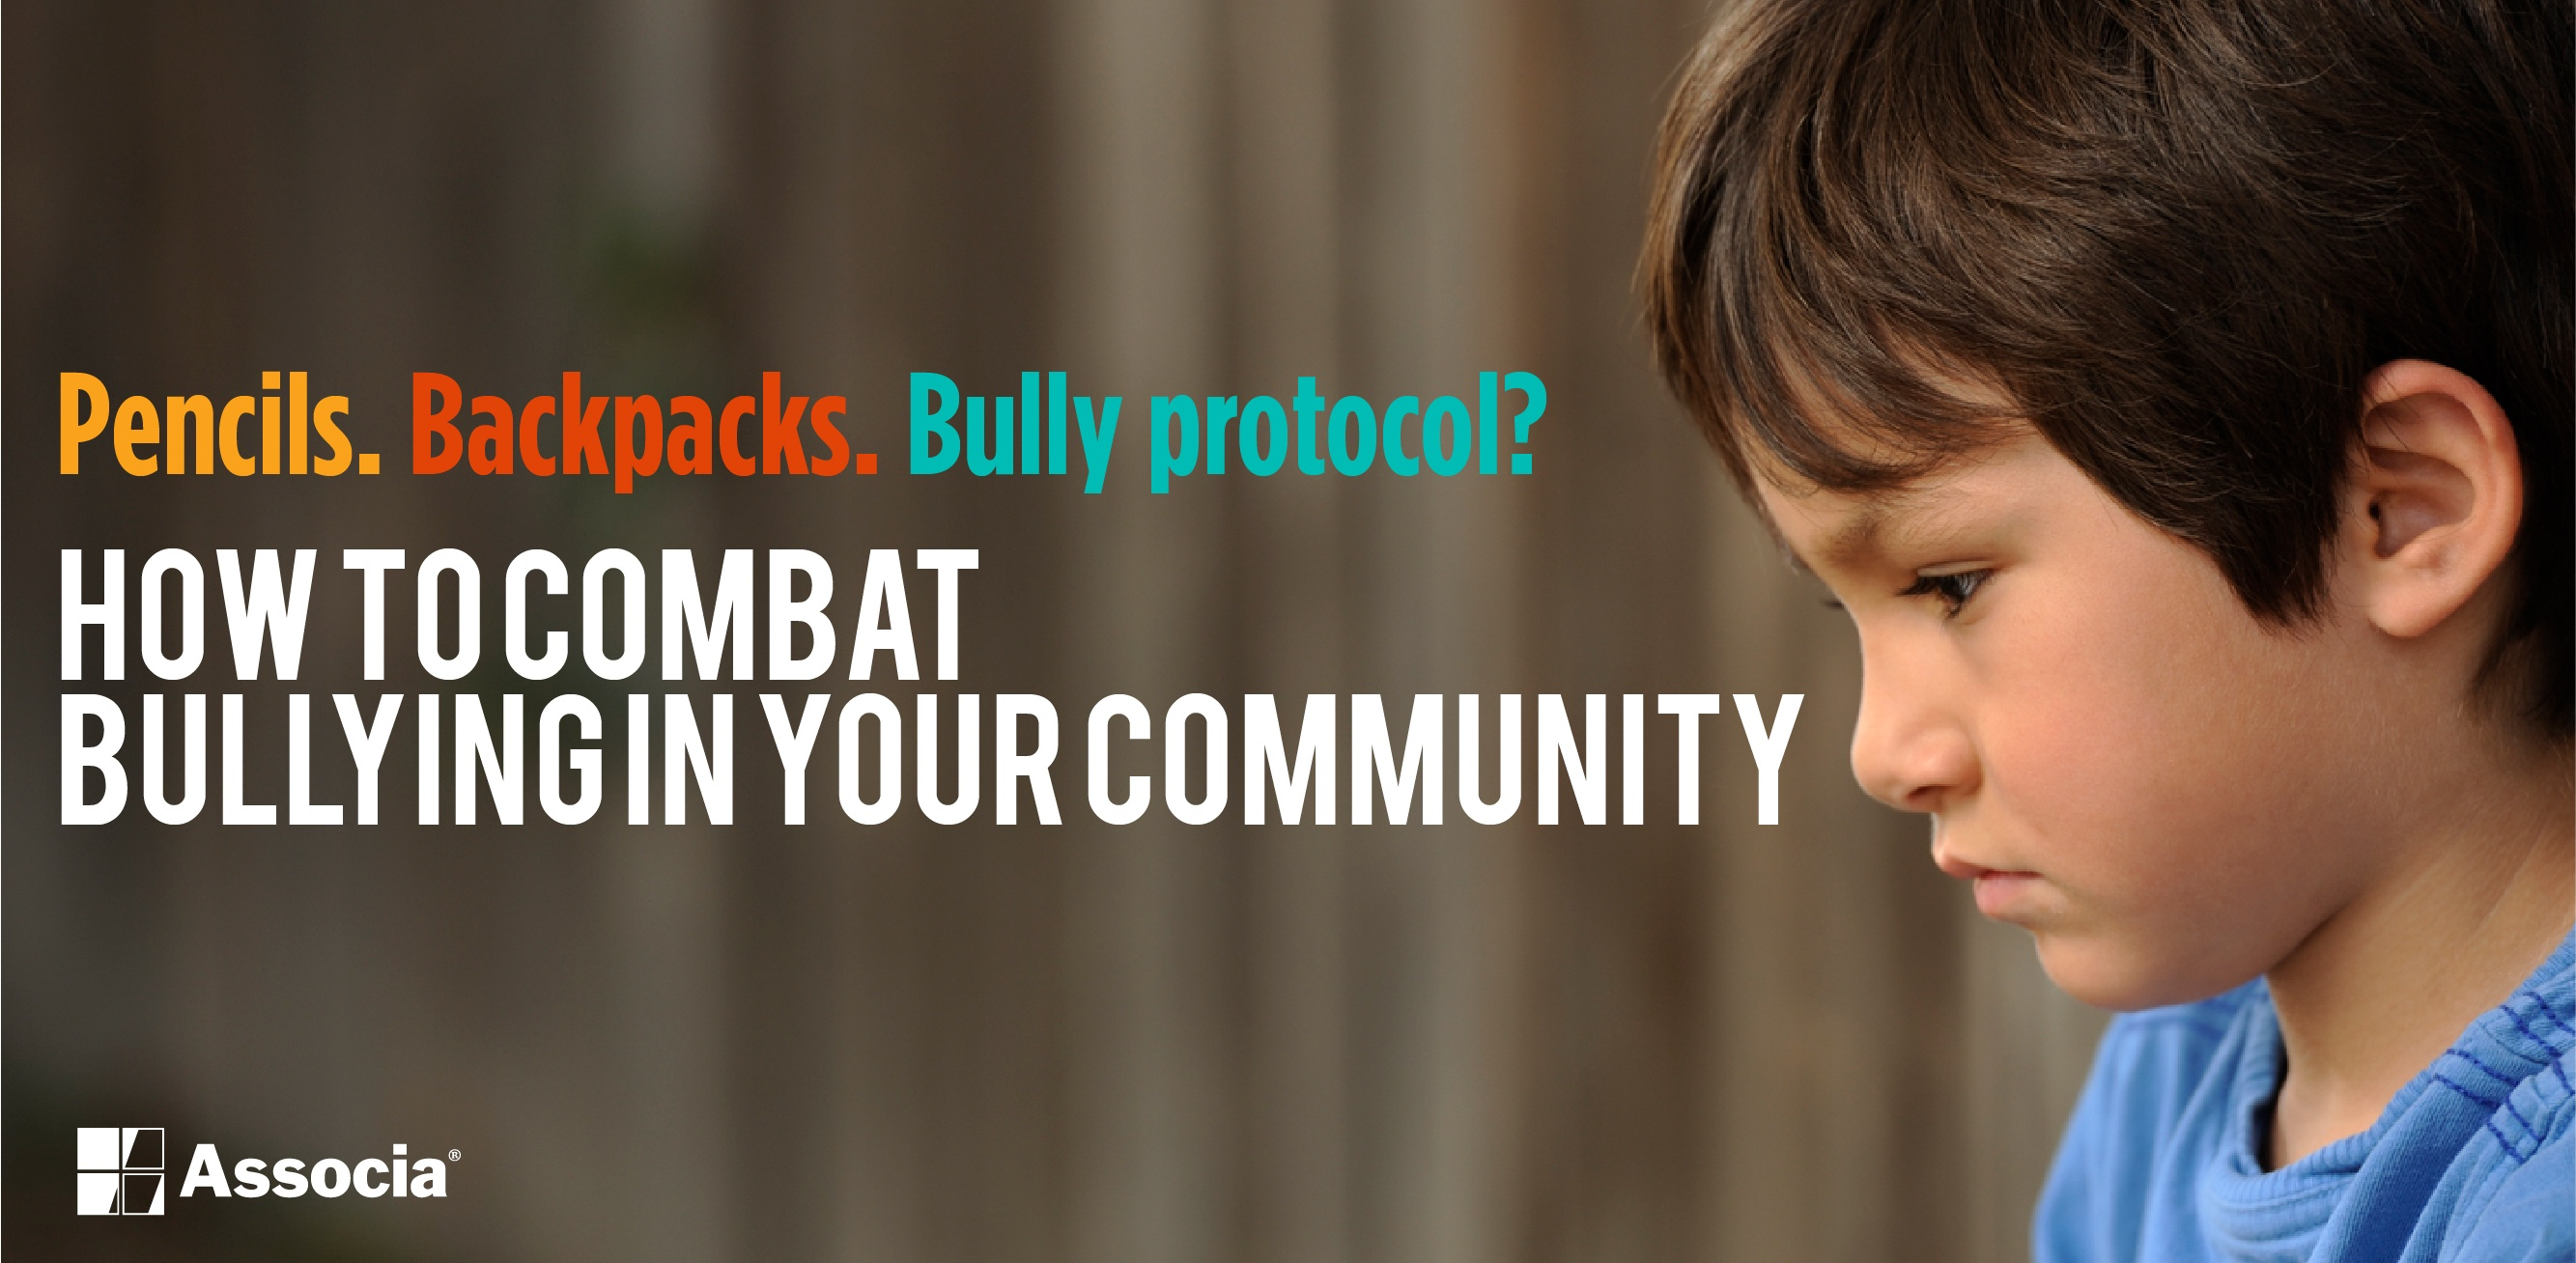 MKTG-16-849_Bullying_Blog_Post_graphic-01.jpg